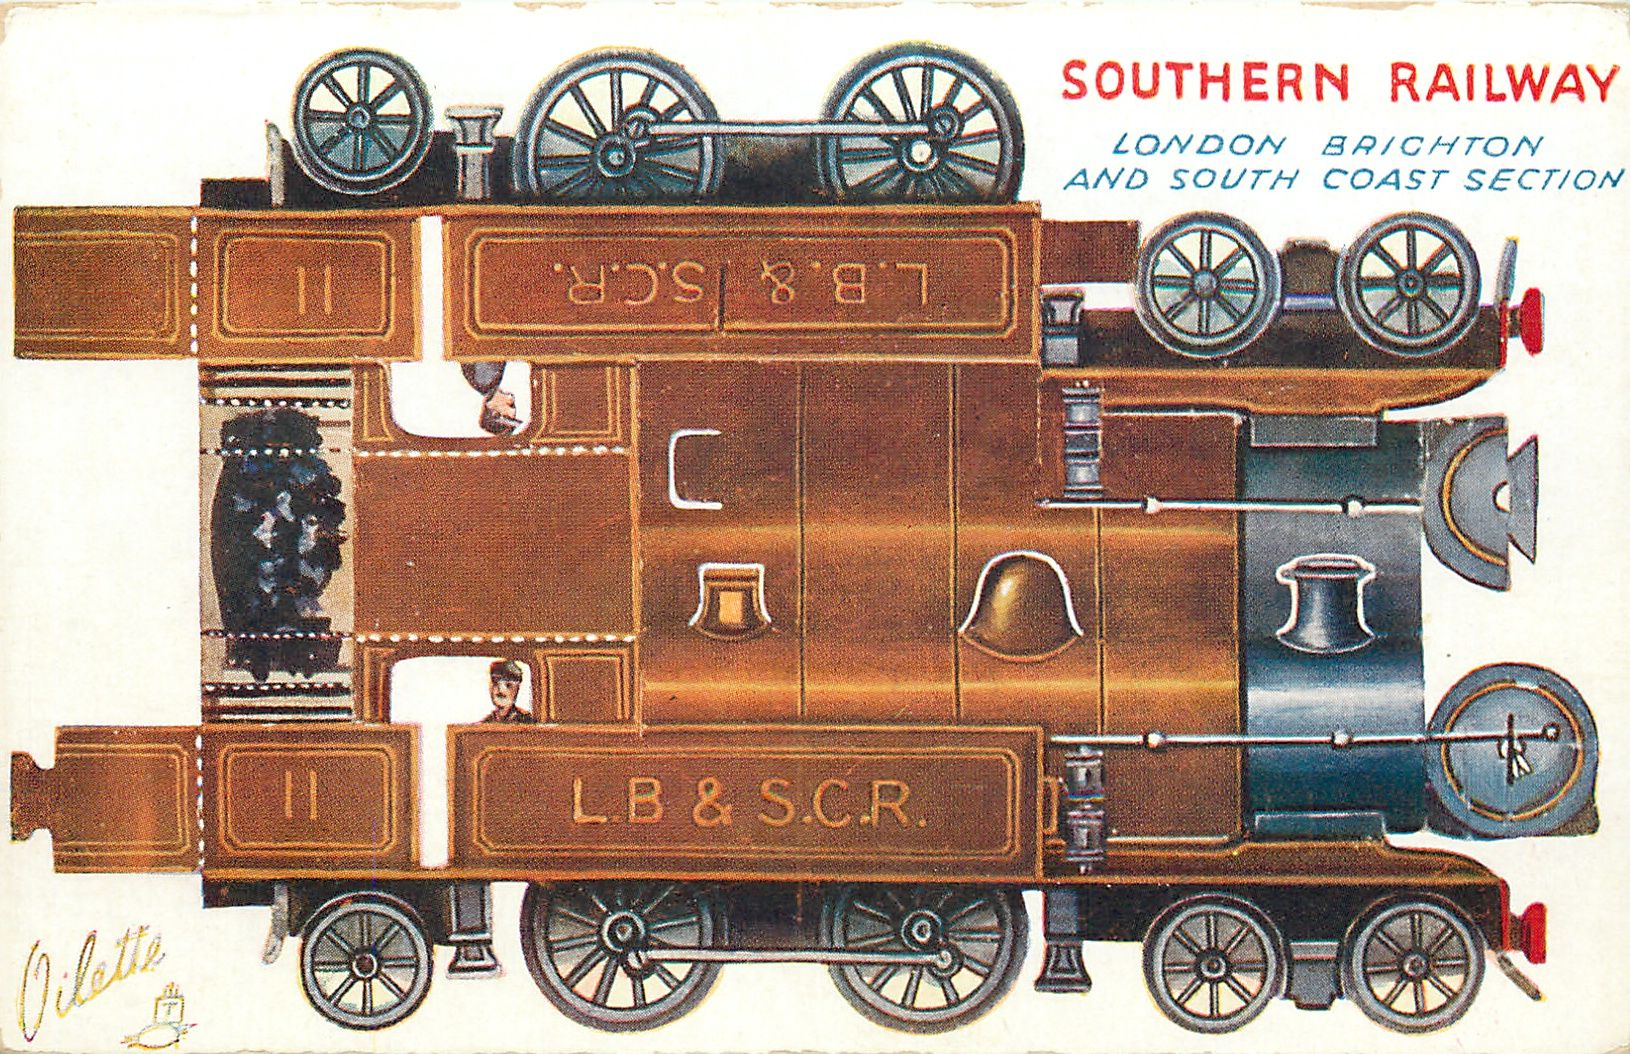 Southern Railway London Brighton And South Coast Section